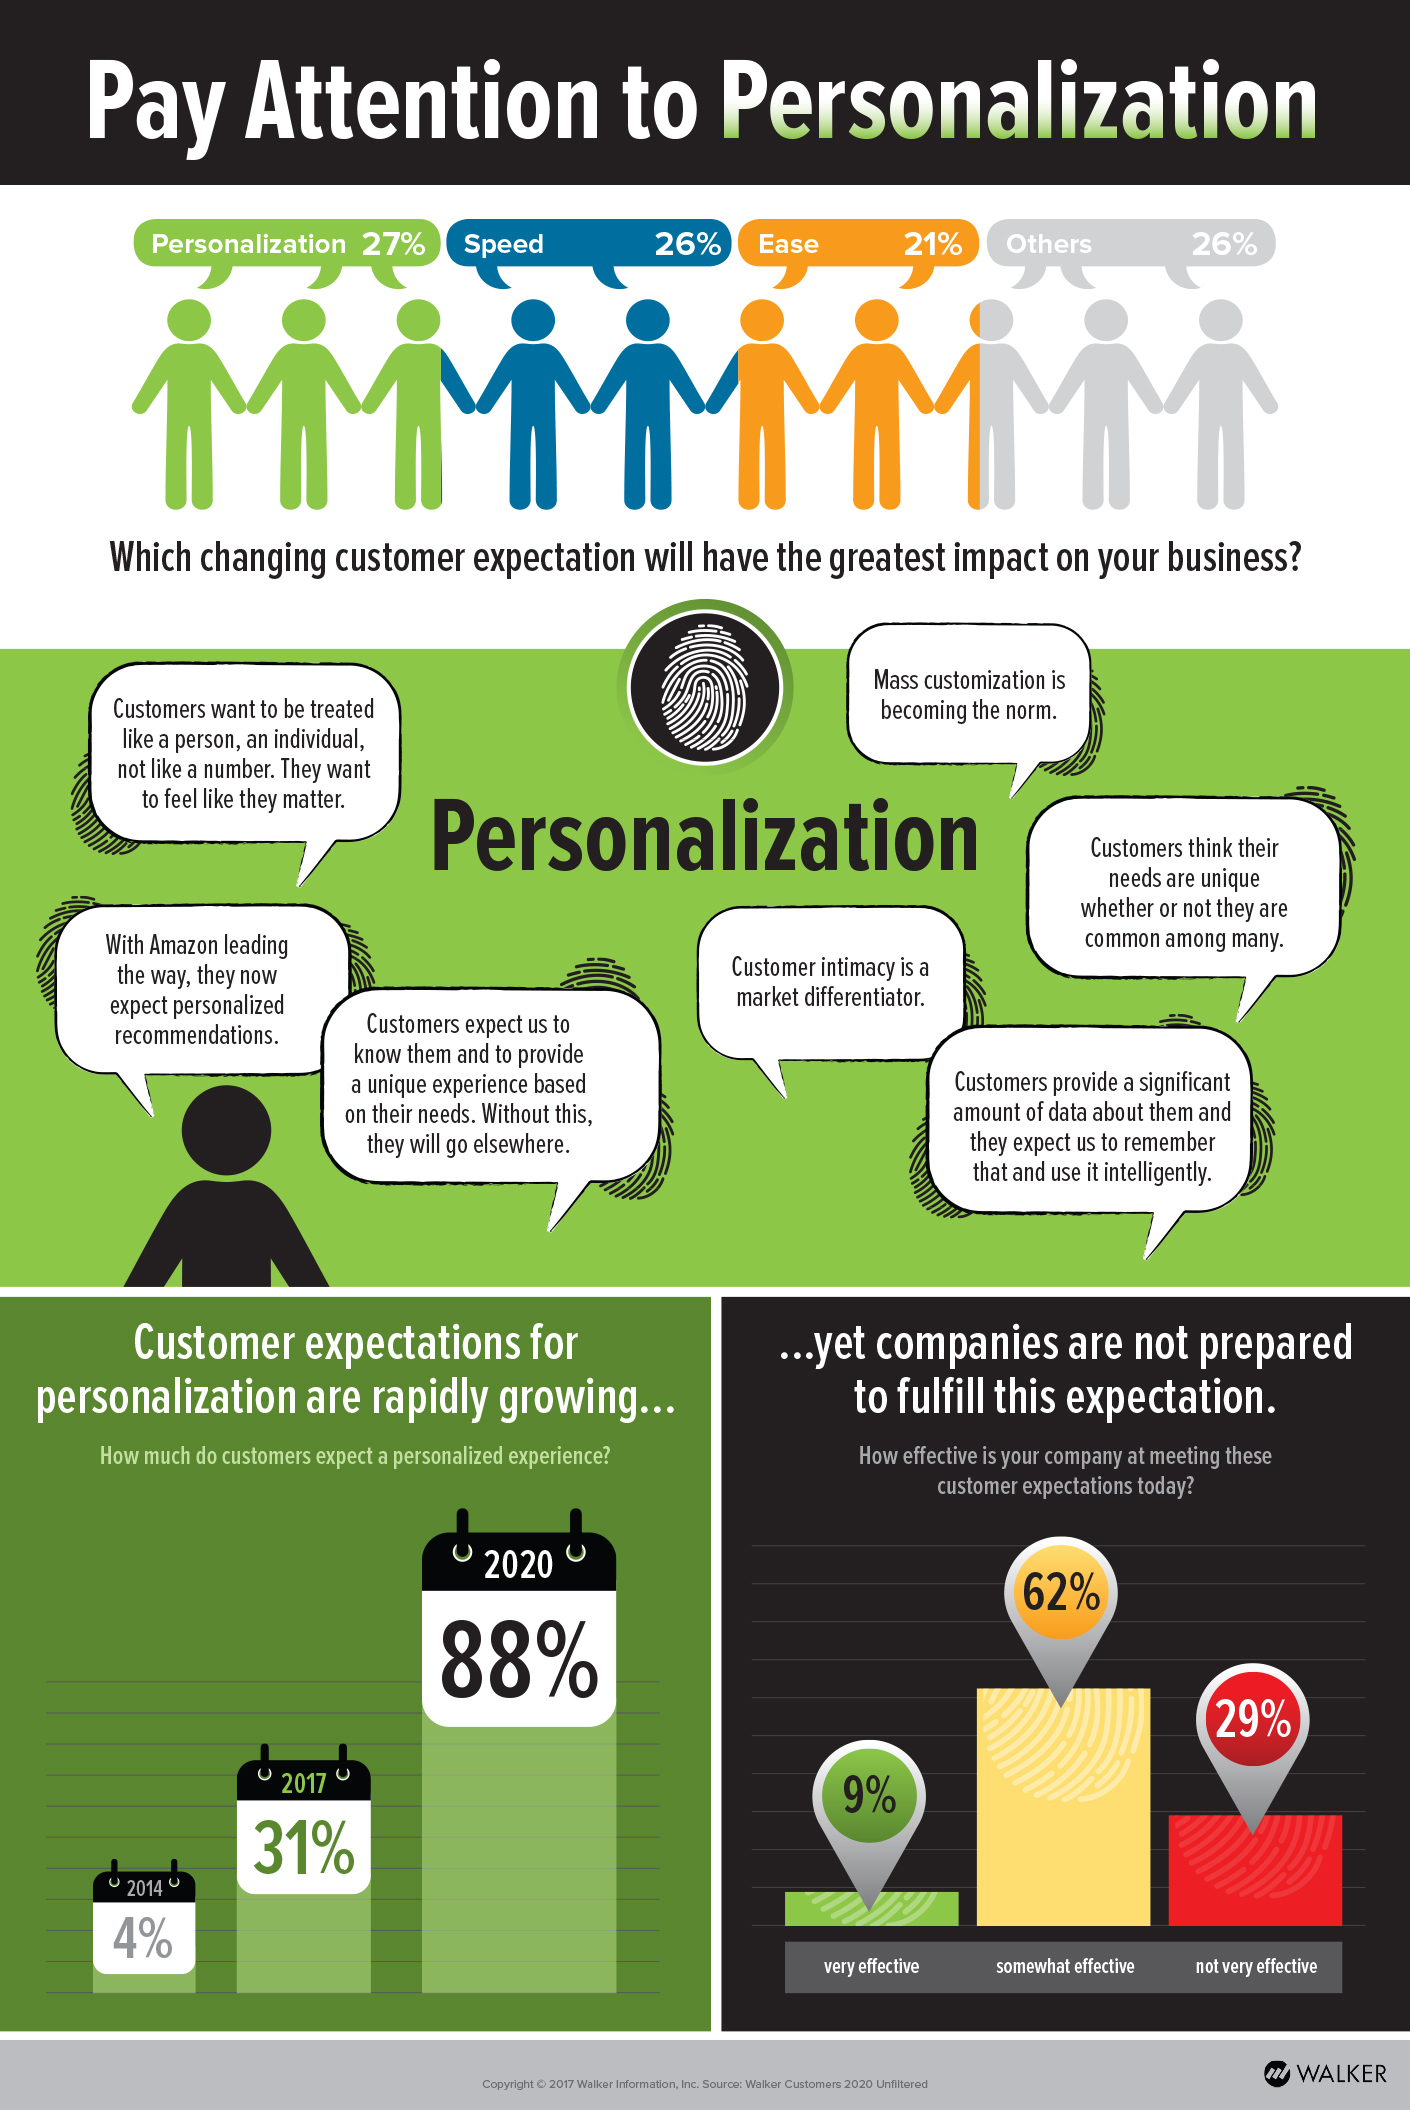 It's time to pay attention to personalization